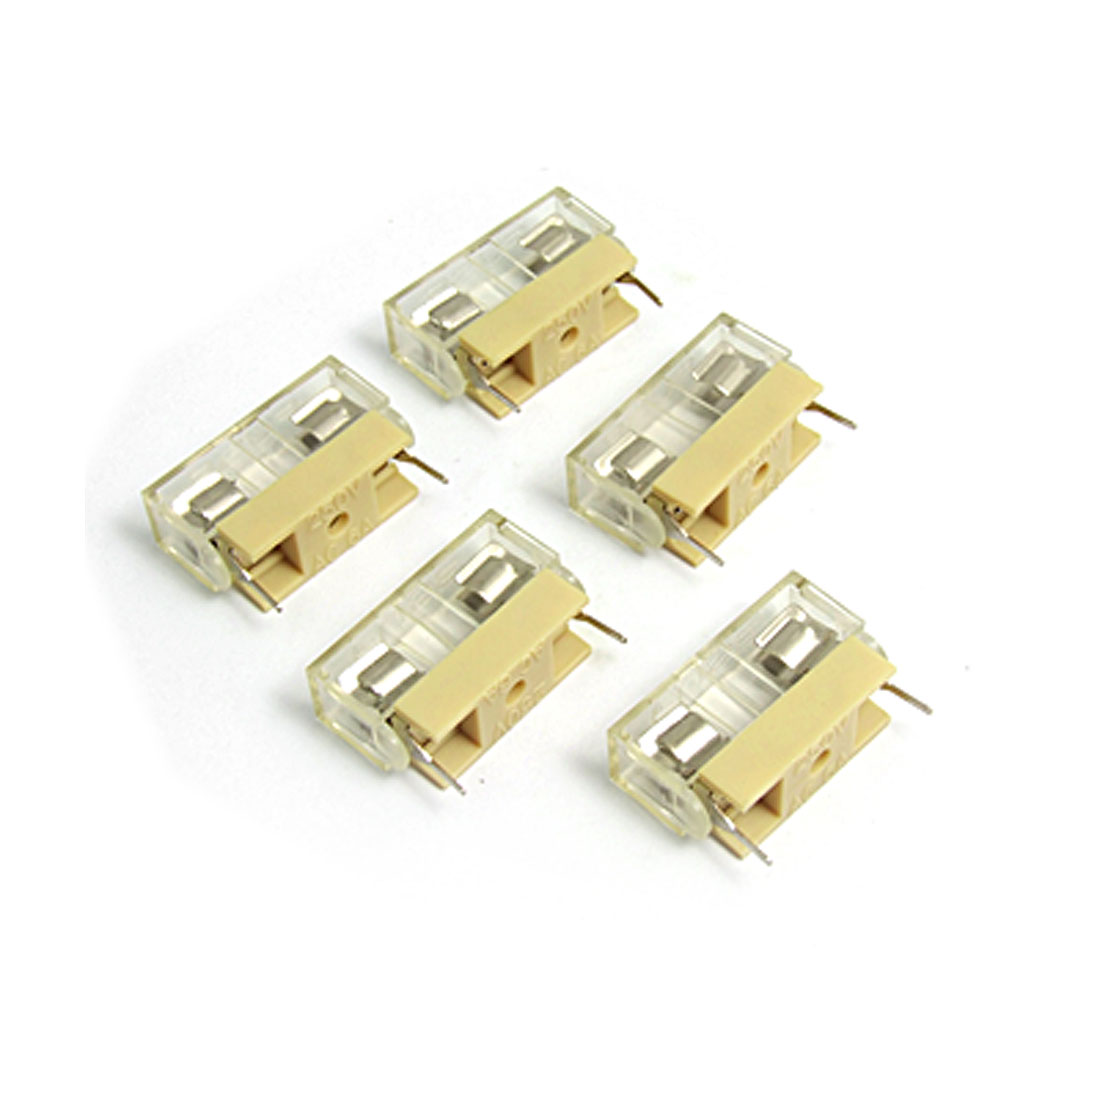 5 Pcs Plastic Cover Holder XS-1033-1 250V 6A for 5 x 20mm Fuse